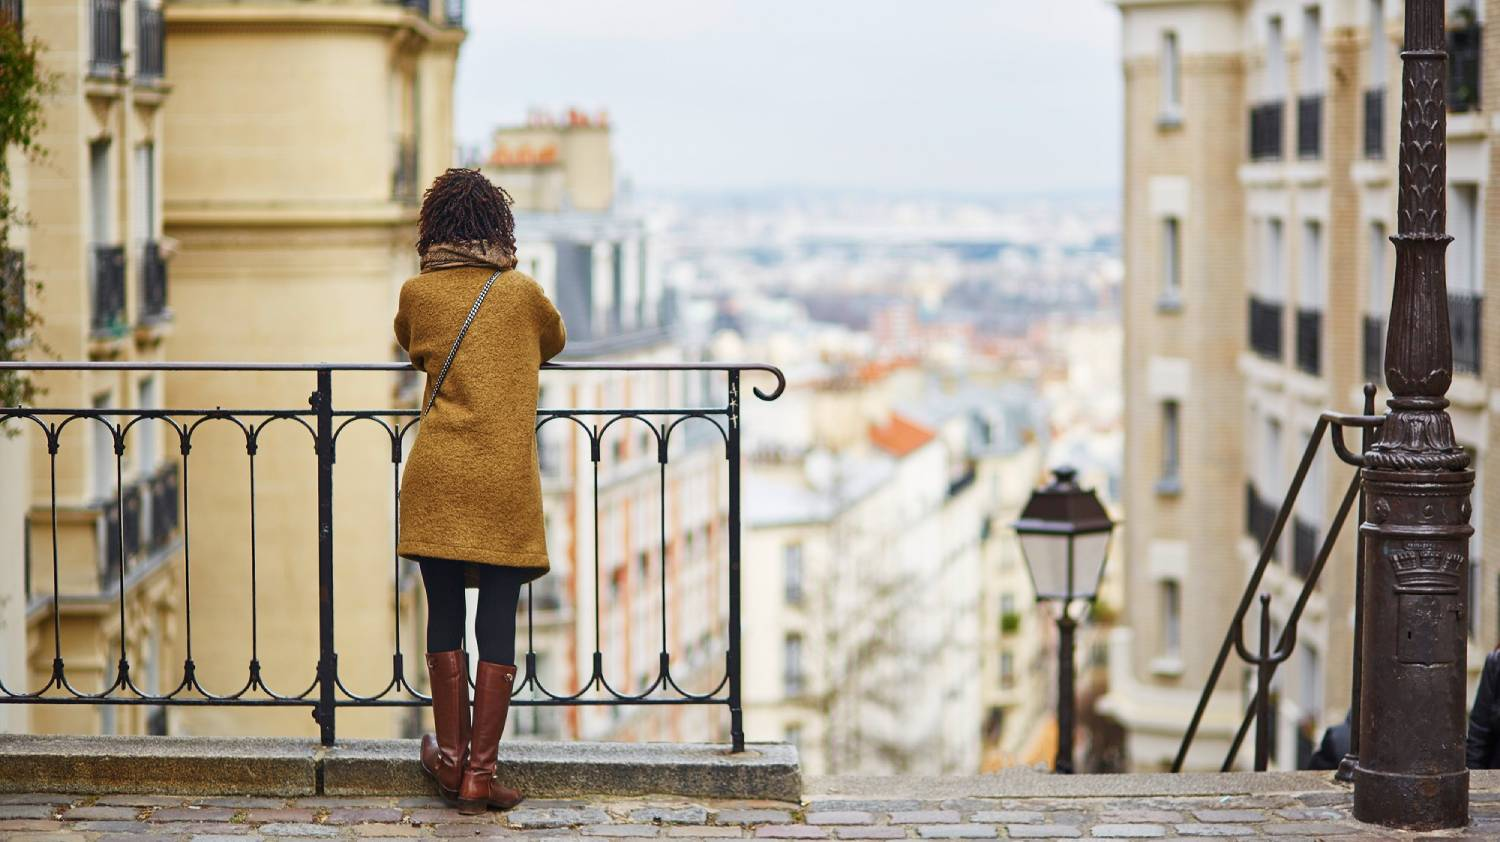 Montmartre - Things To Do In Paris